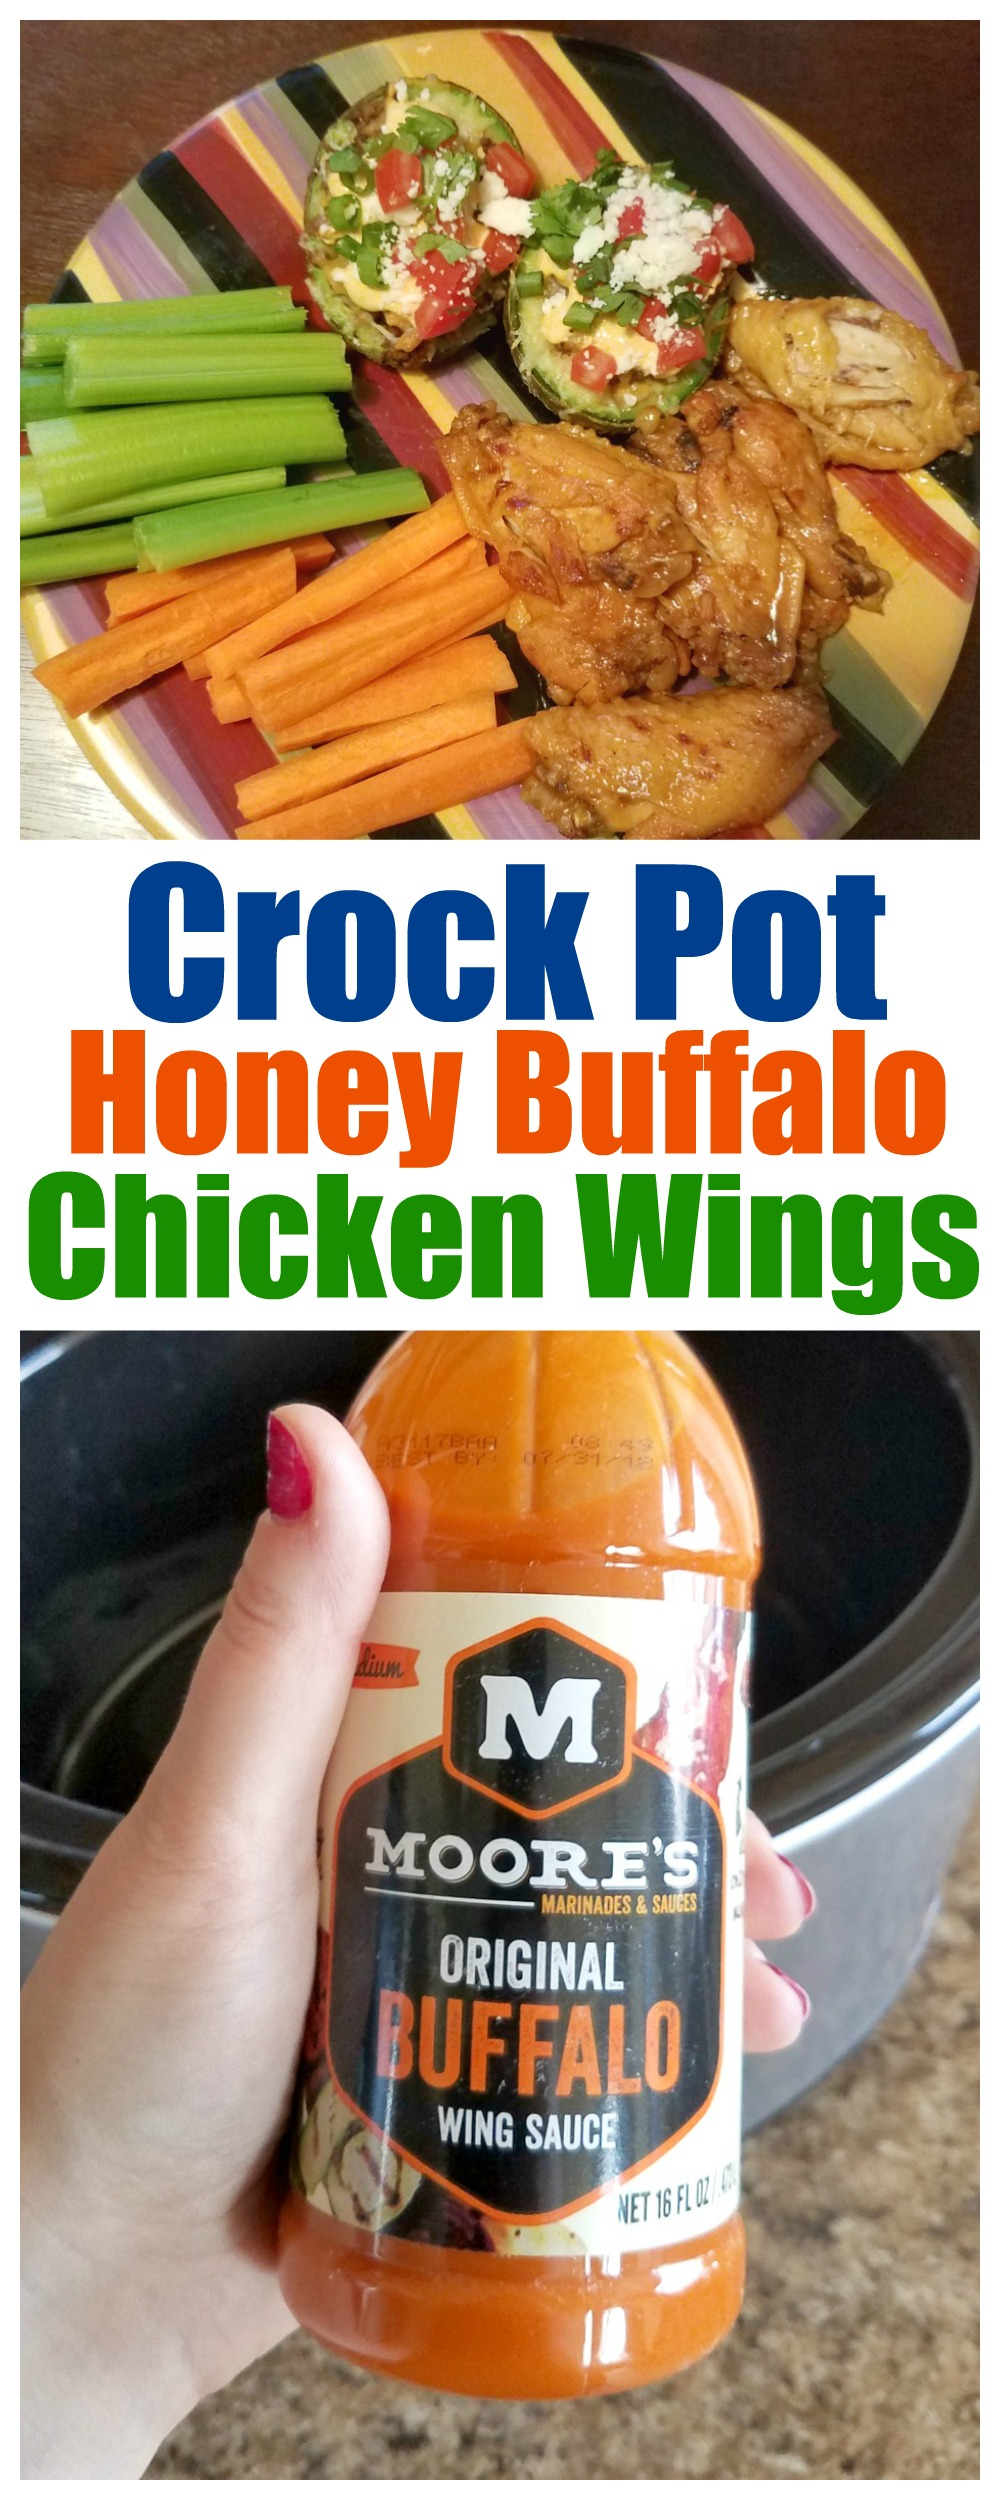 Crock Pot Honey Buffalo Chicken Wings